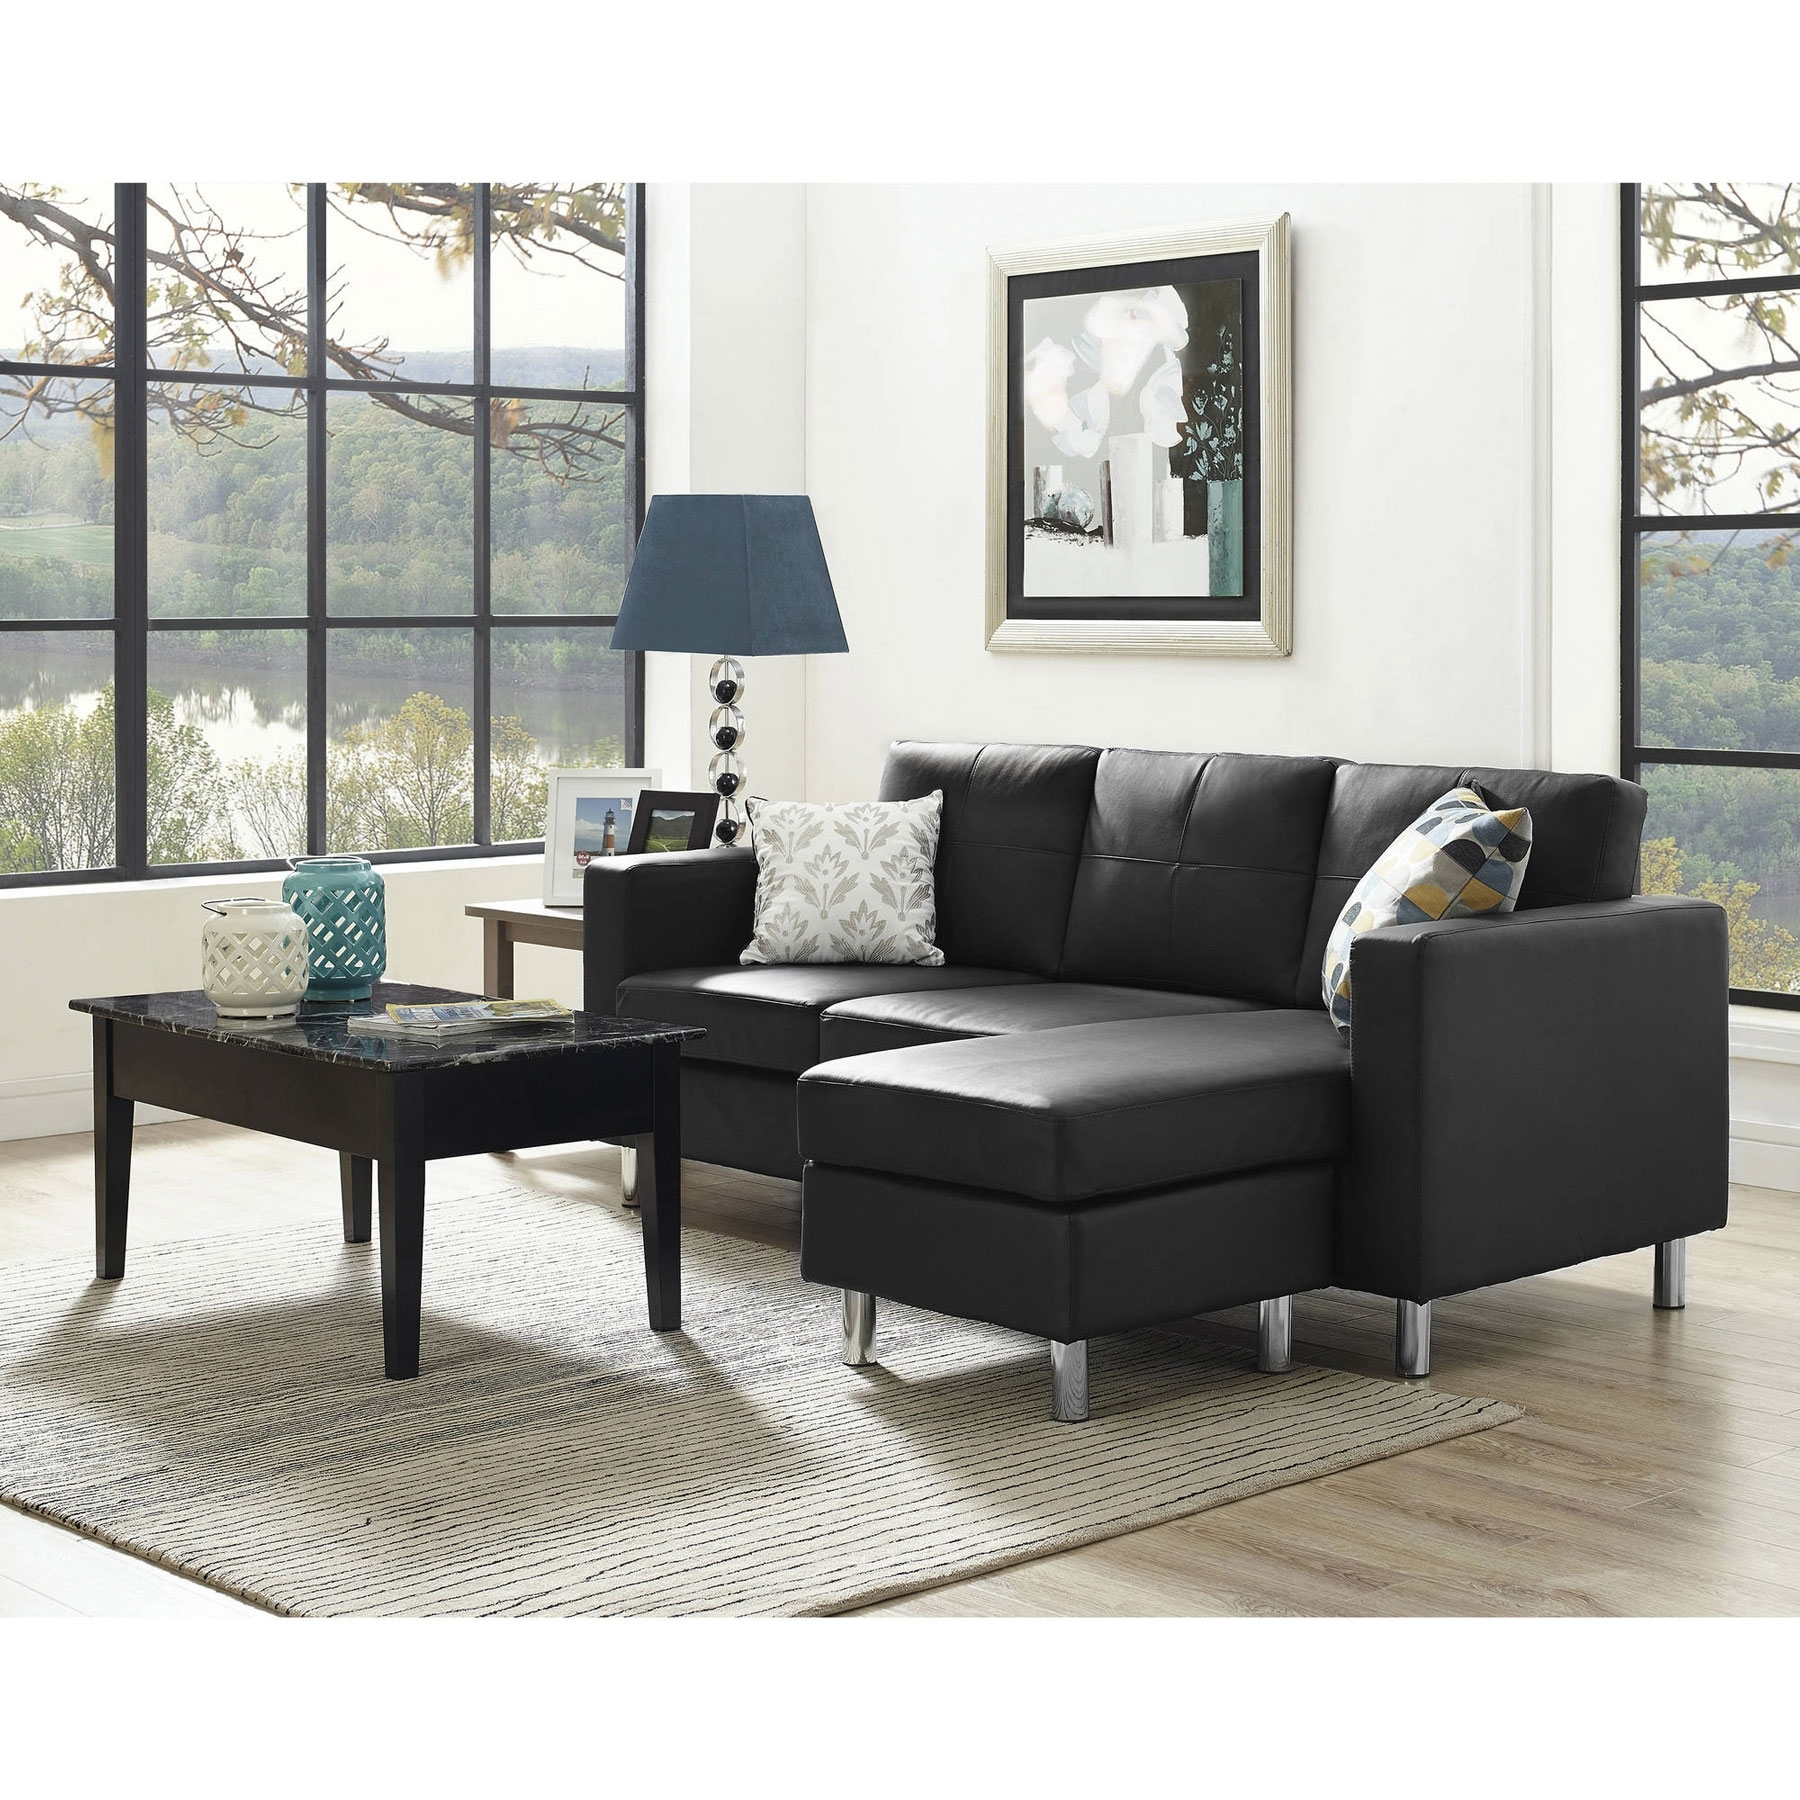 Sectional Sofa: Small Spaces Sectional Sets Small L Shaped Leather Inside Trendy Sectional Sofas For Small Rooms (View 7 of 15)